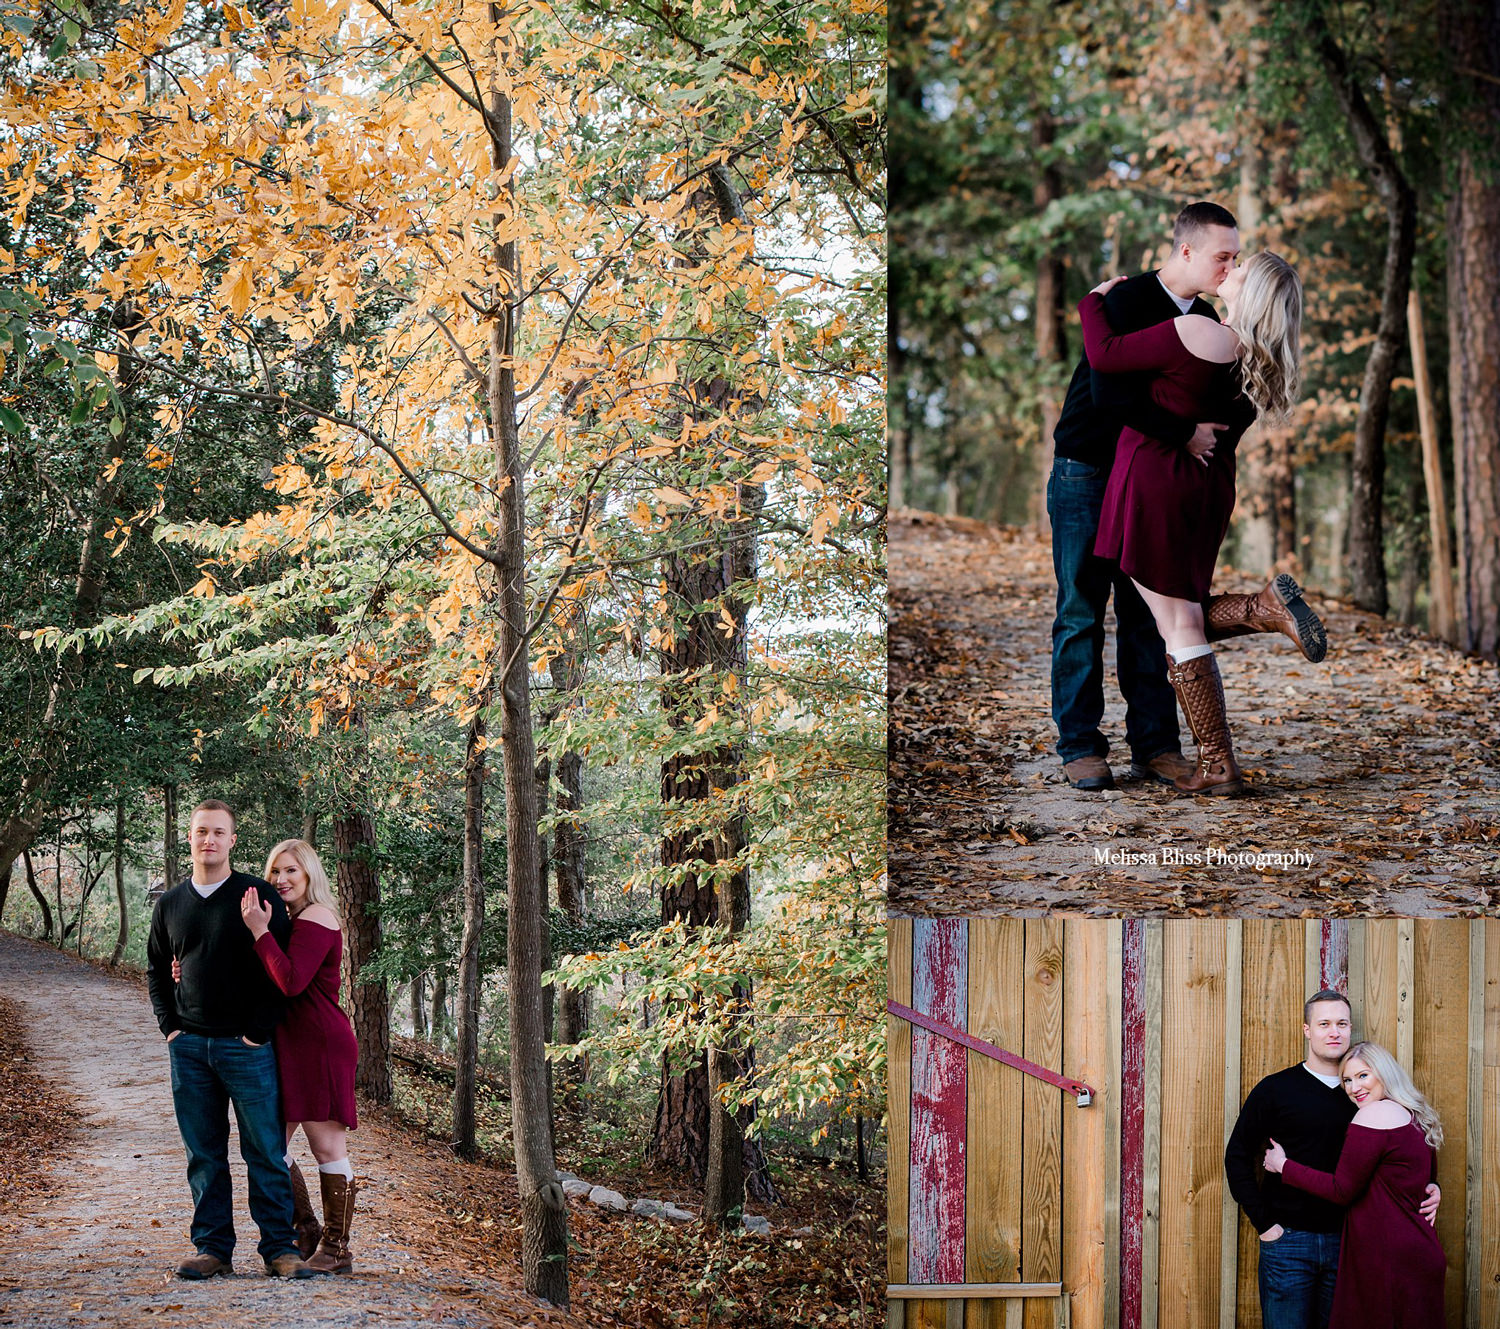 fun-romantic-engagement-session-pictures-norfolk-lifestyle-photographer-melissa-bliss-photography.jpg